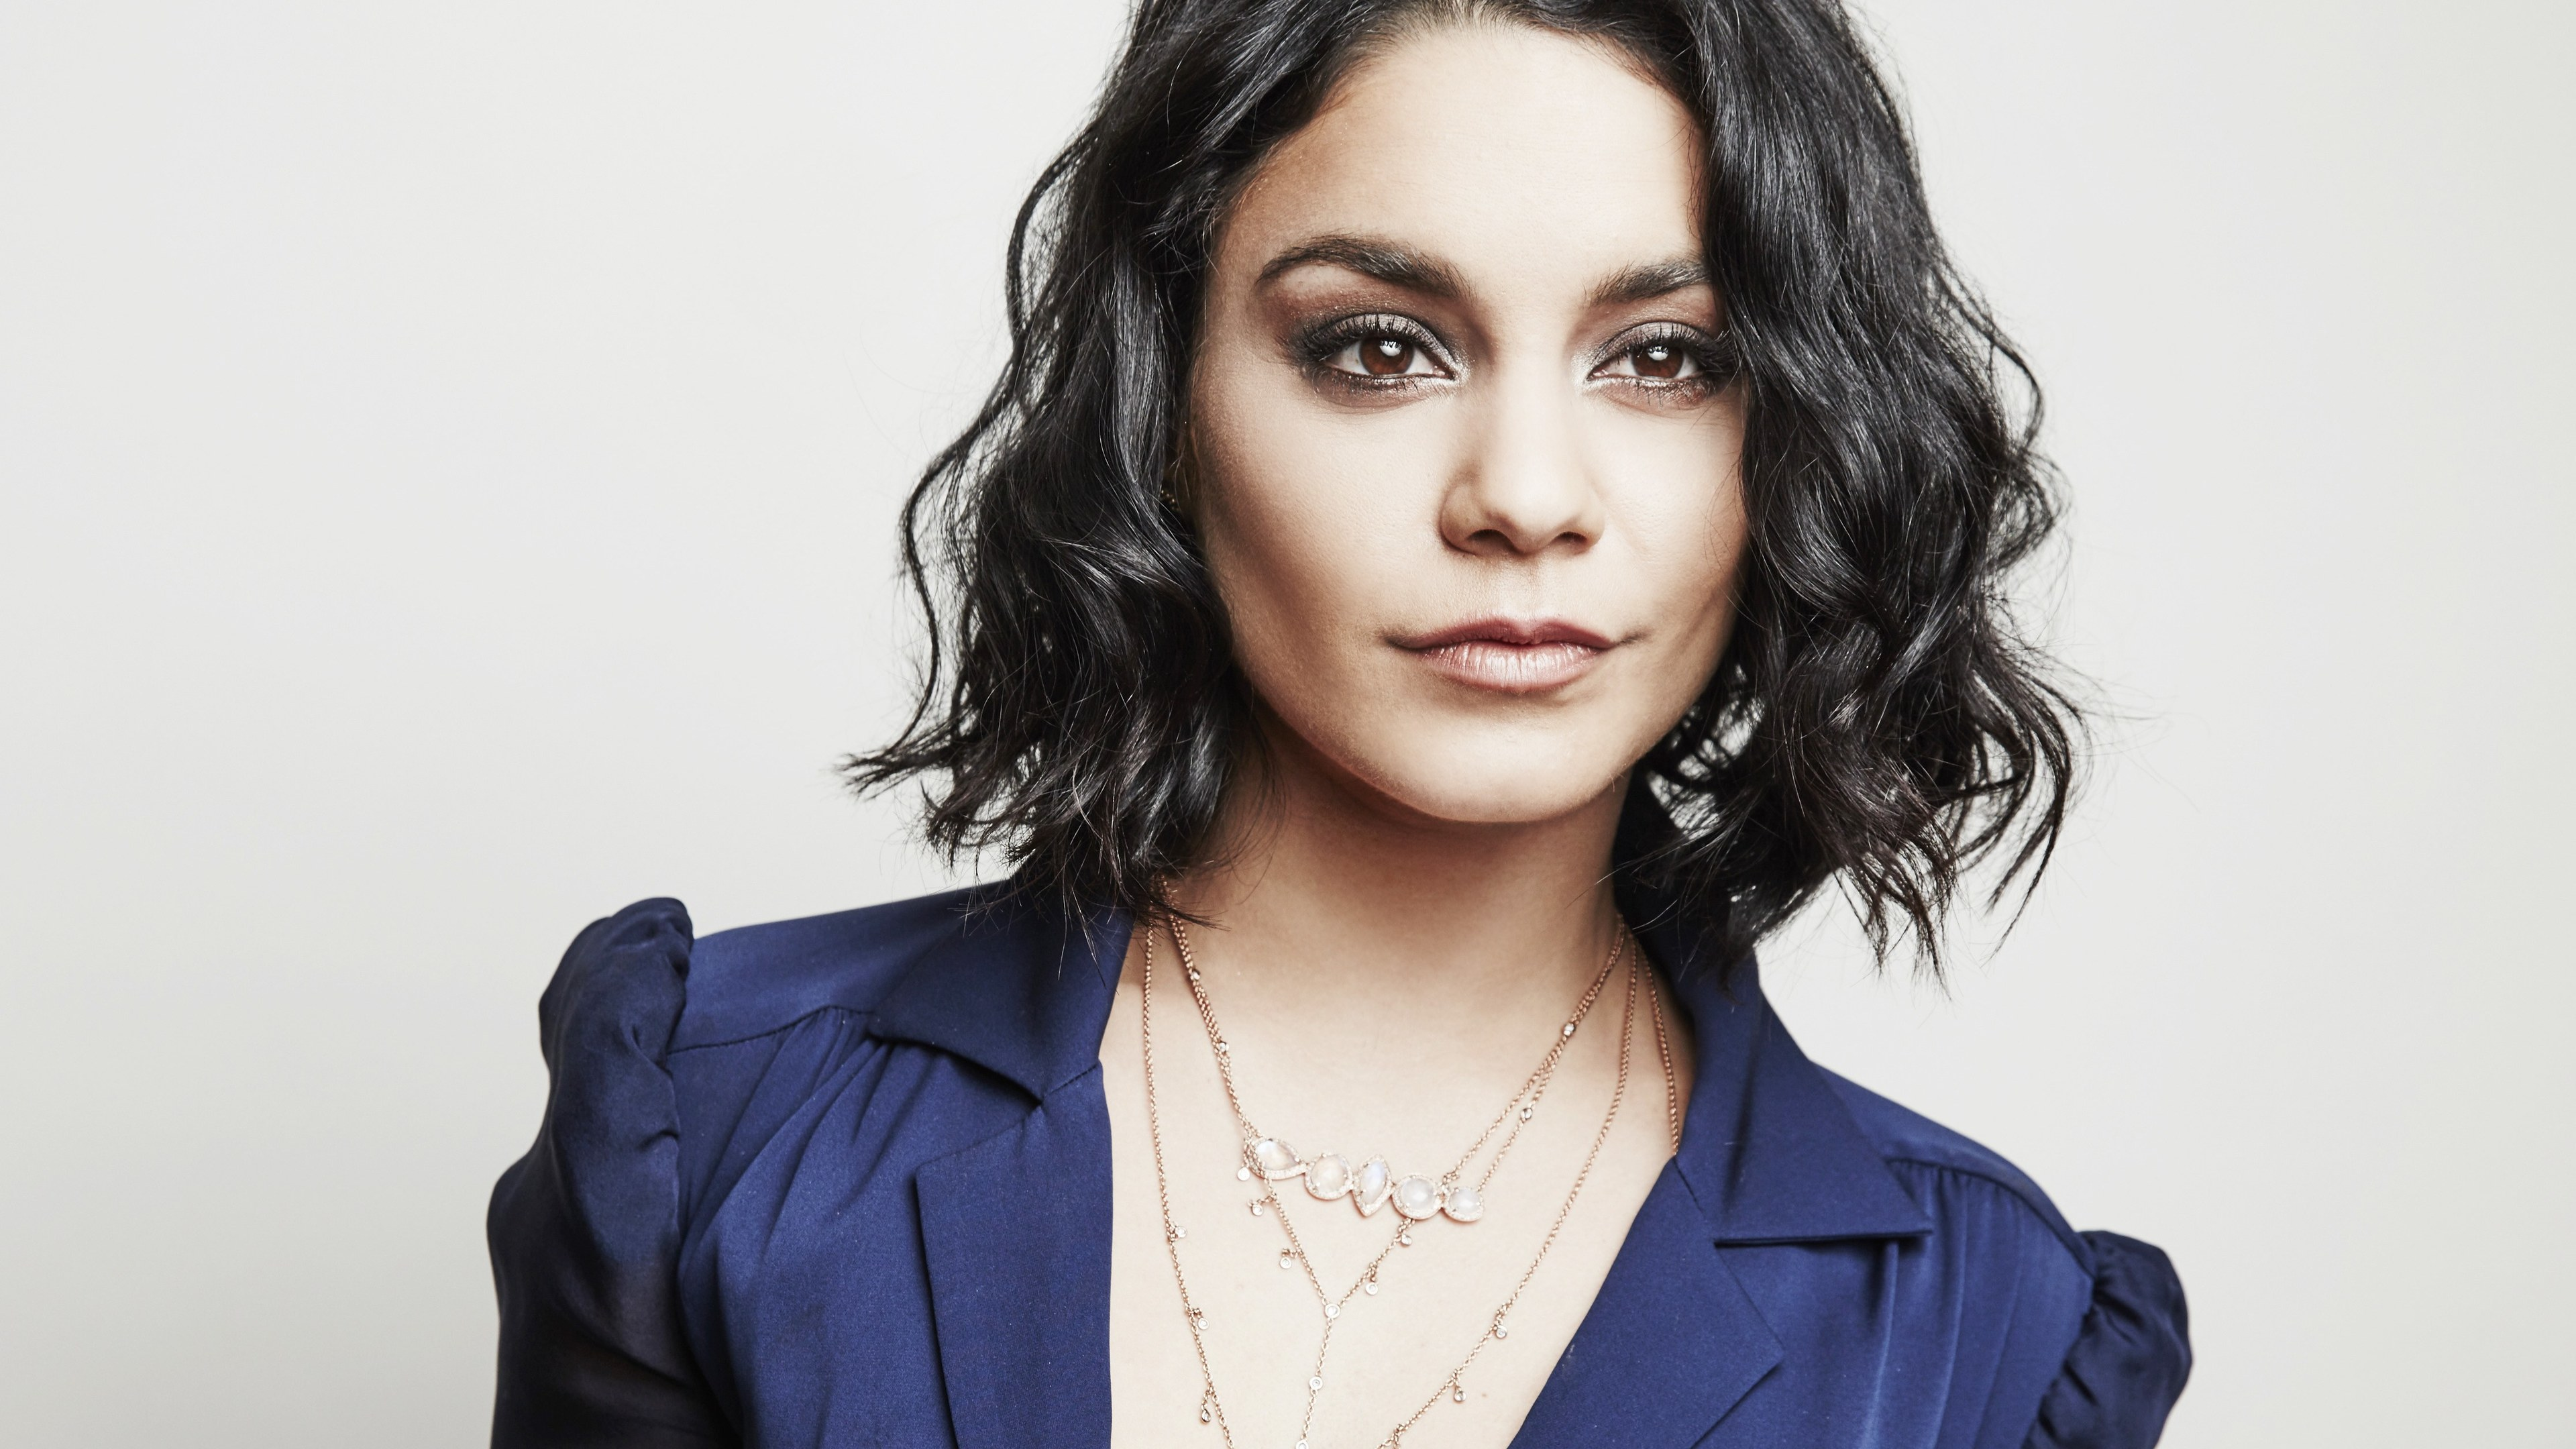 vanessa hudgens 1536857076 - Vanessa Hudgens - vanessa hudgens wallpapers, girls wallpapers, celebrities wallpapers